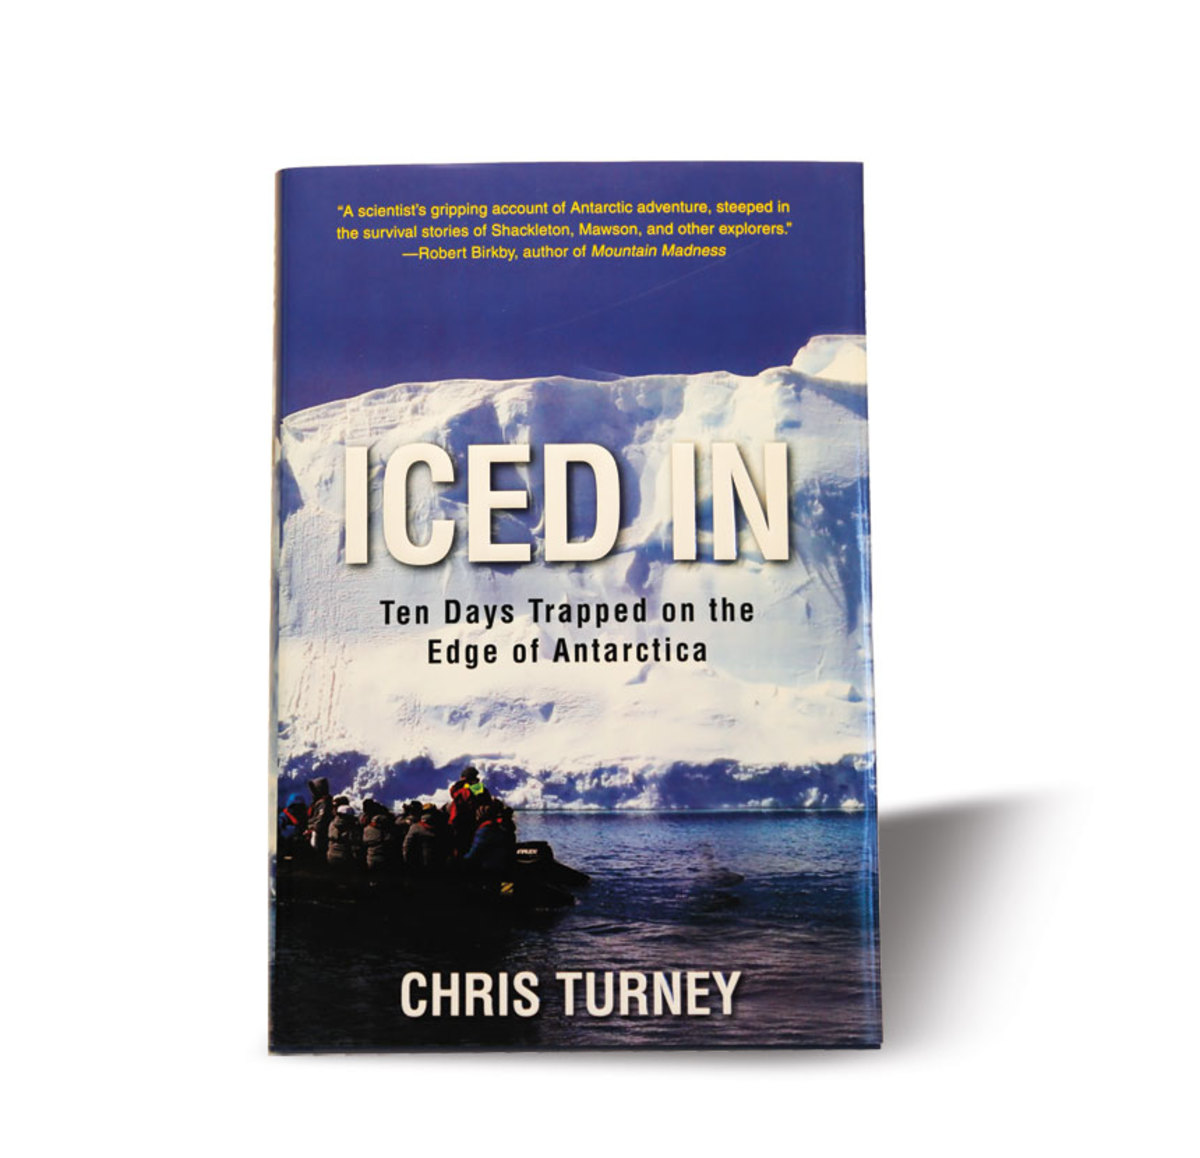 iced-in-bookcover-chris-turney